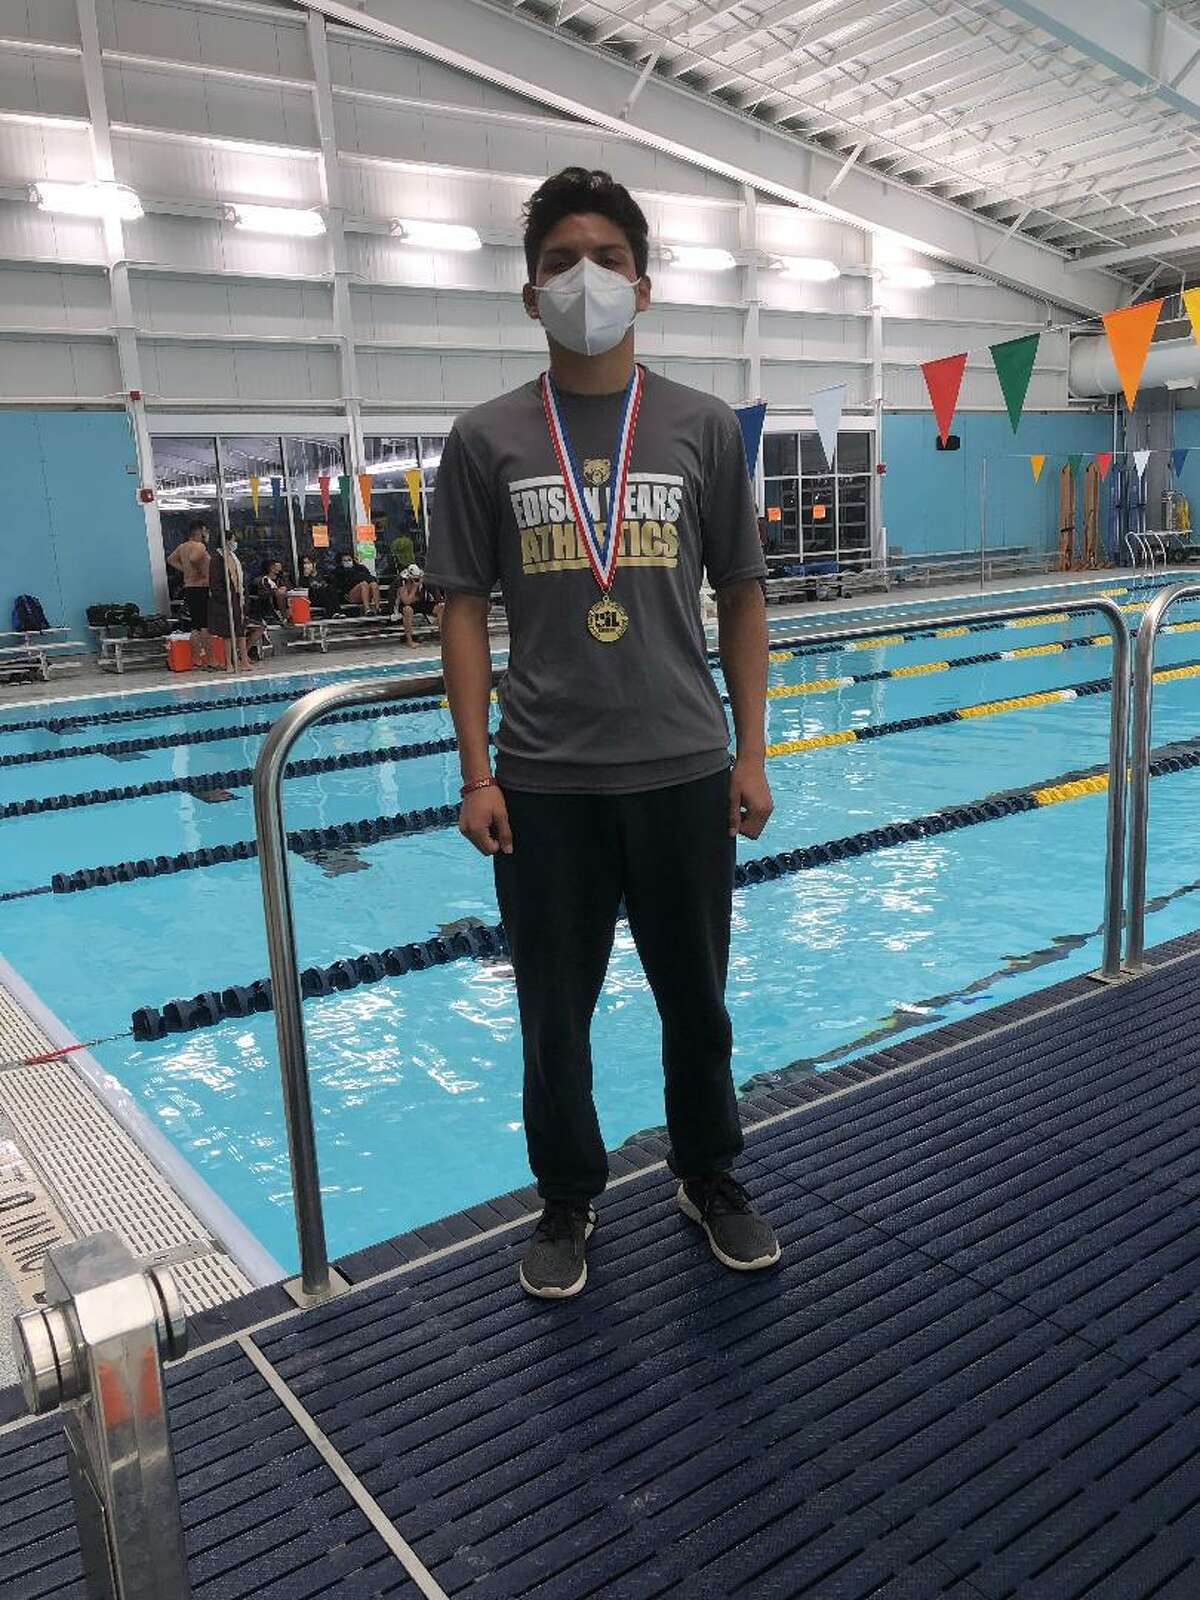 Edison High School senior Christian Rangel wears the gold medal he won at the Class 5A regional diving meet on Feb. 6. The win earned him a spot to compete at the UIL Swimming and Diving State Meet on Saturday at Josh Davis Natatorium. He will be competing in the Class 5A 1-meter diving event.